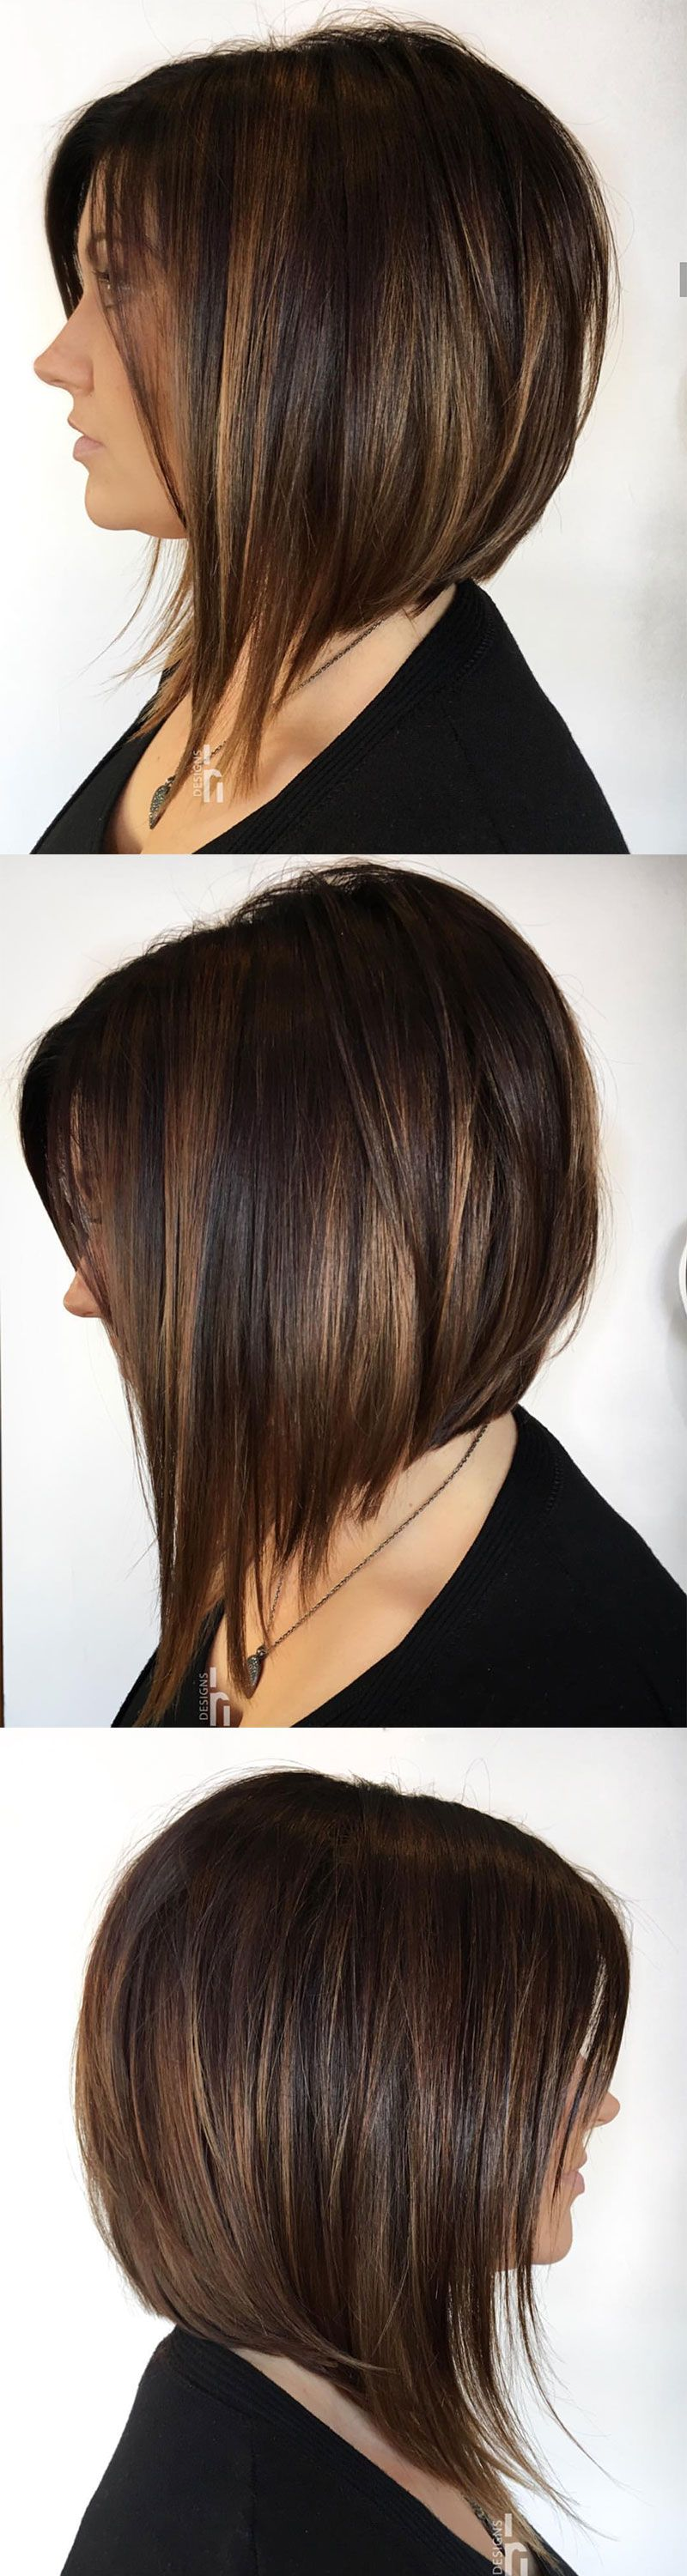 long angled inverted bob for when pixie grows out headrushdesigns